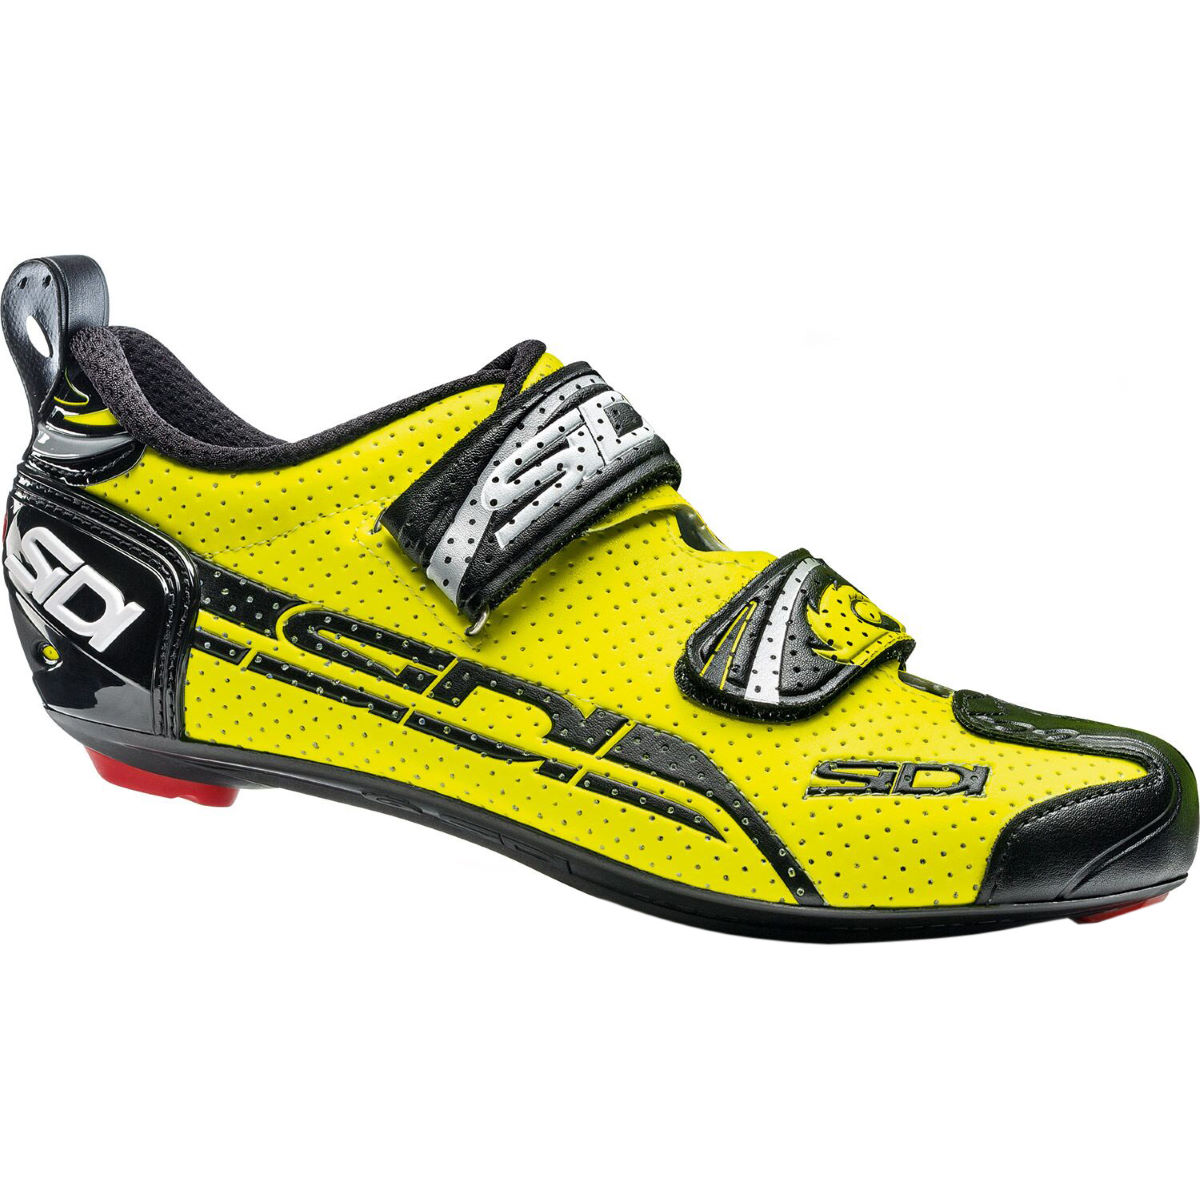 Sidi T-4 Air Carbon Triathlon Shoe - 41 Yellow Fluo/Black | Tri Shoes